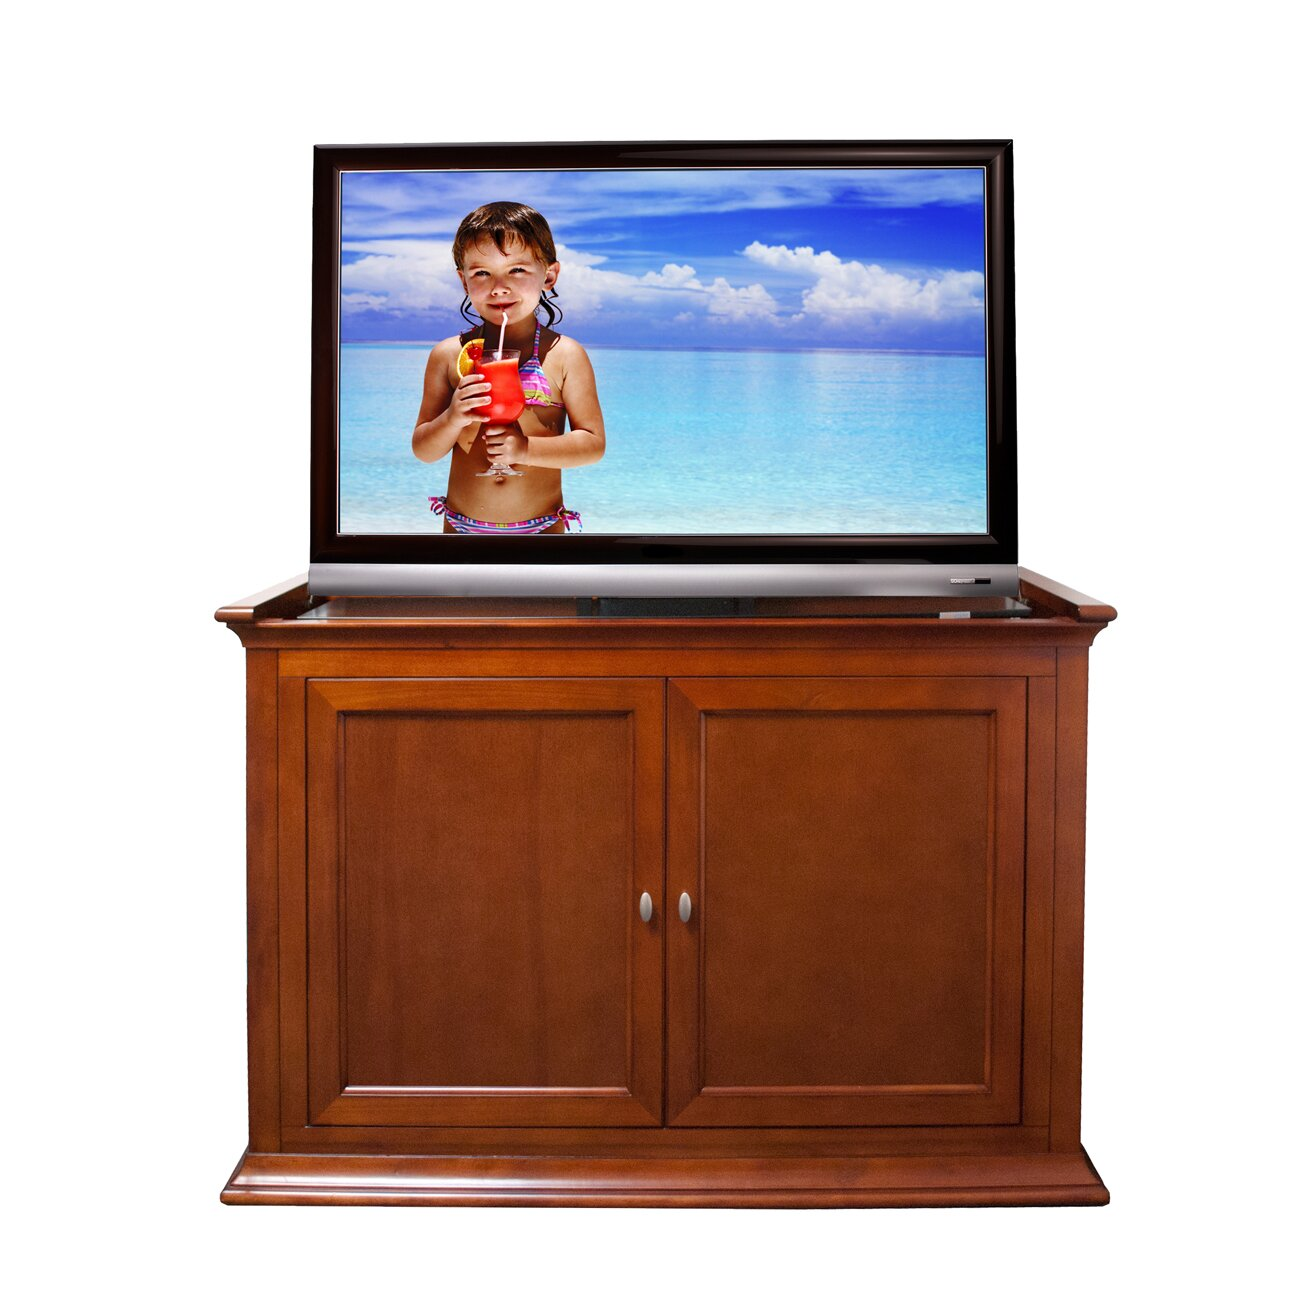 touchstone harrison lift cabinet tv stand wayfair. Black Bedroom Furniture Sets. Home Design Ideas